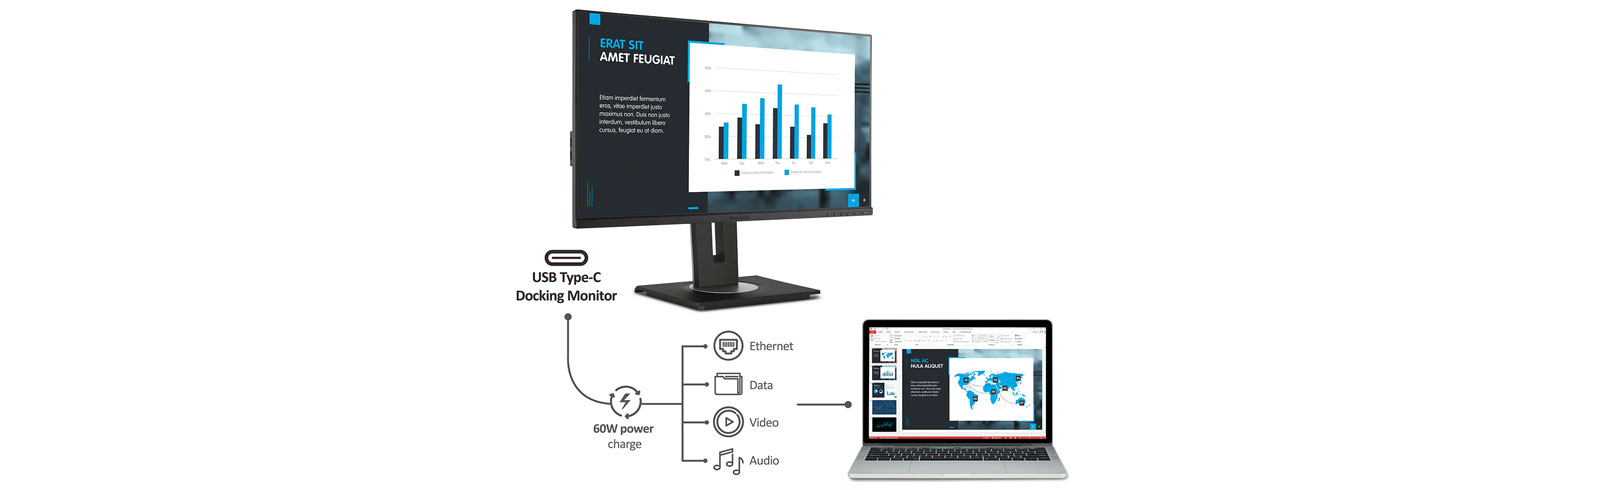 """ViewSonic VG2456 is a 24"""" docking monitor with USB Type-C and Ethernet"""